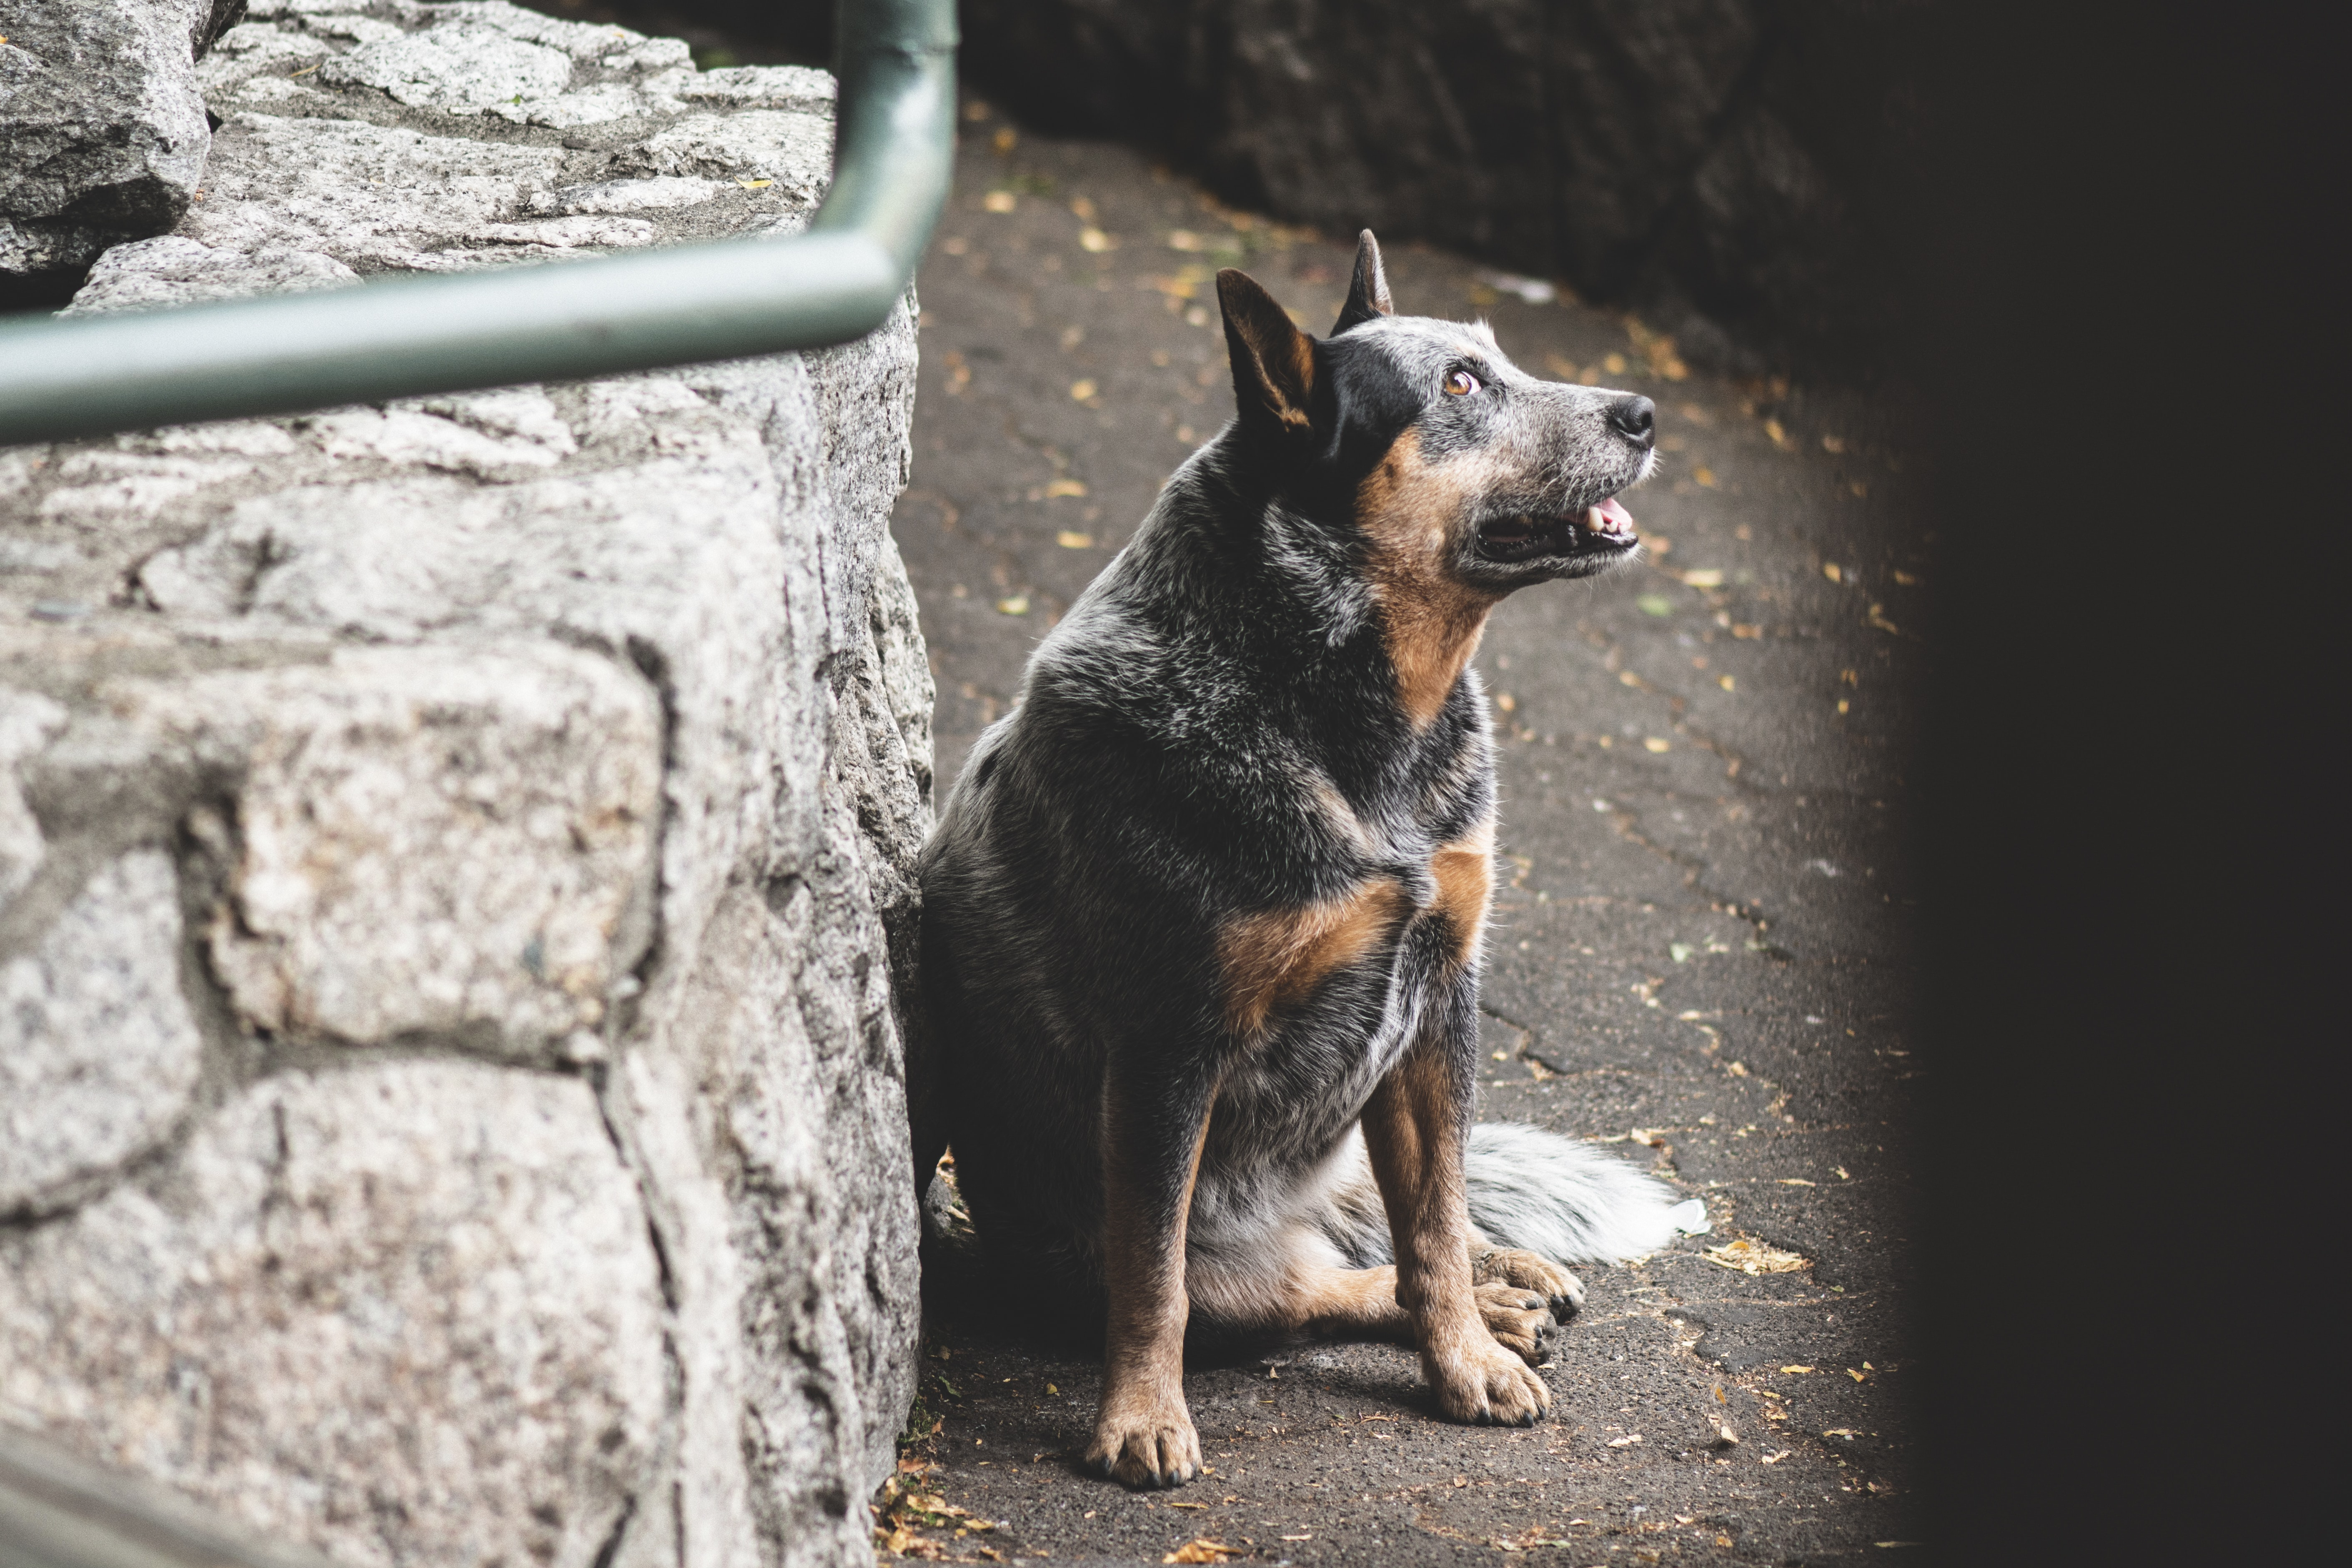 photo of black and tan dog beside pavement